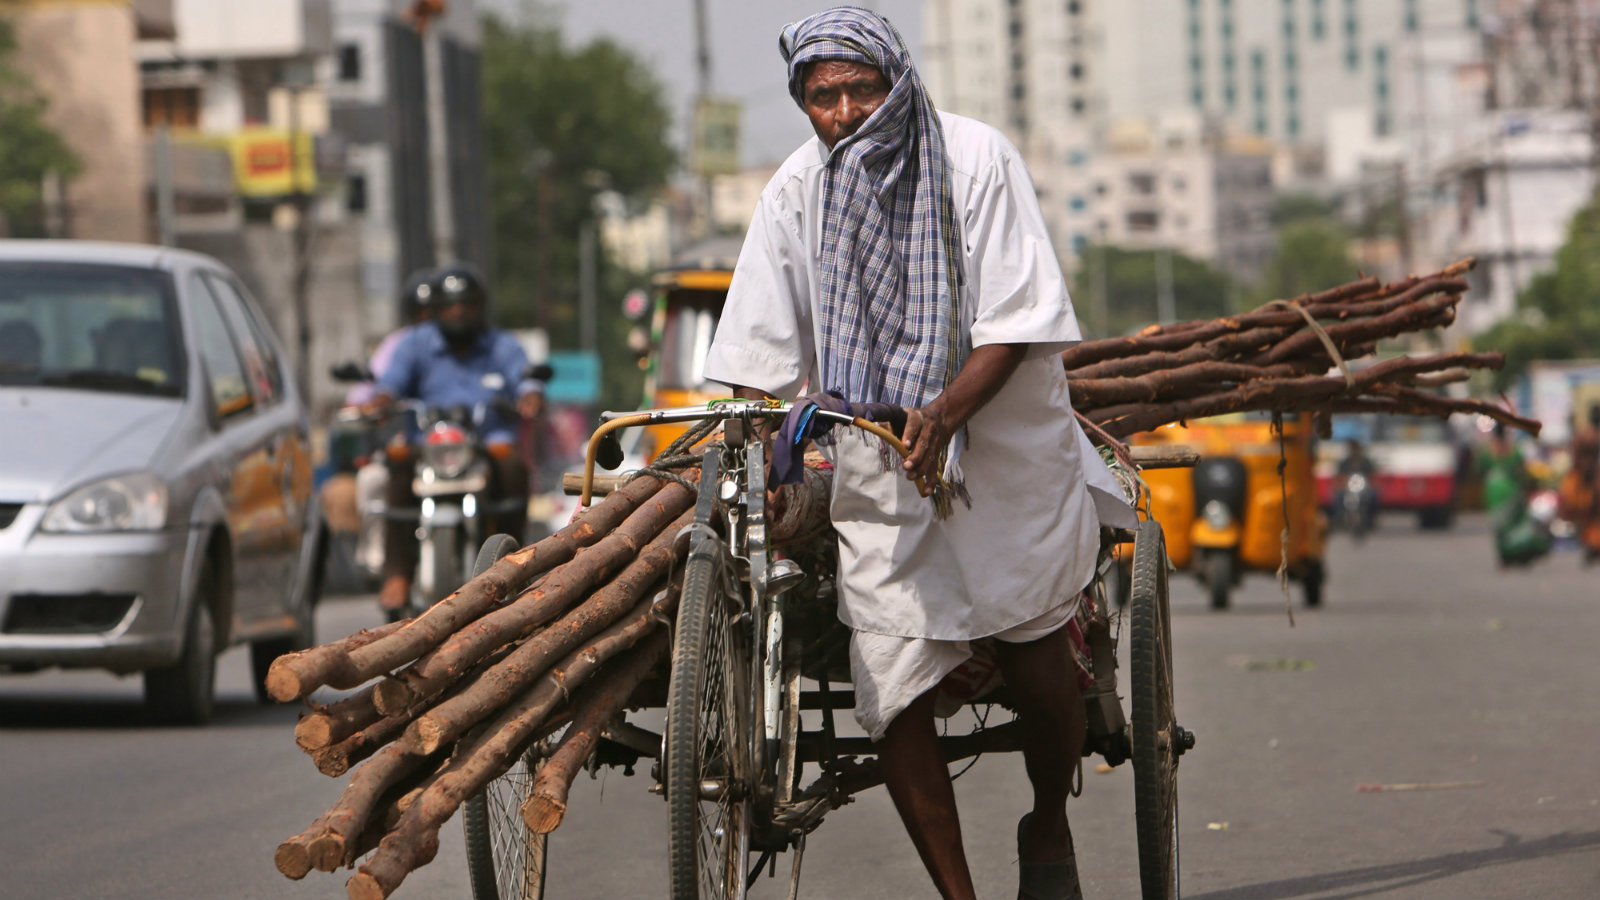 A laborer covers himself with a cloth to protect from the sun as he pulls a rickshaw carrying wooden logs on a hot summer afternoon in Hyderabad, India, Friday, May 20, 2016. The prolonged heat wave this year has already killed hundreds and destroyed crops in more than 13 states. The extreme heat has impacted hundreds of millions in western India with record temperatures Friday reaching as high as a scorching 51 degrees Celsius (123.8 Fahrenheit).